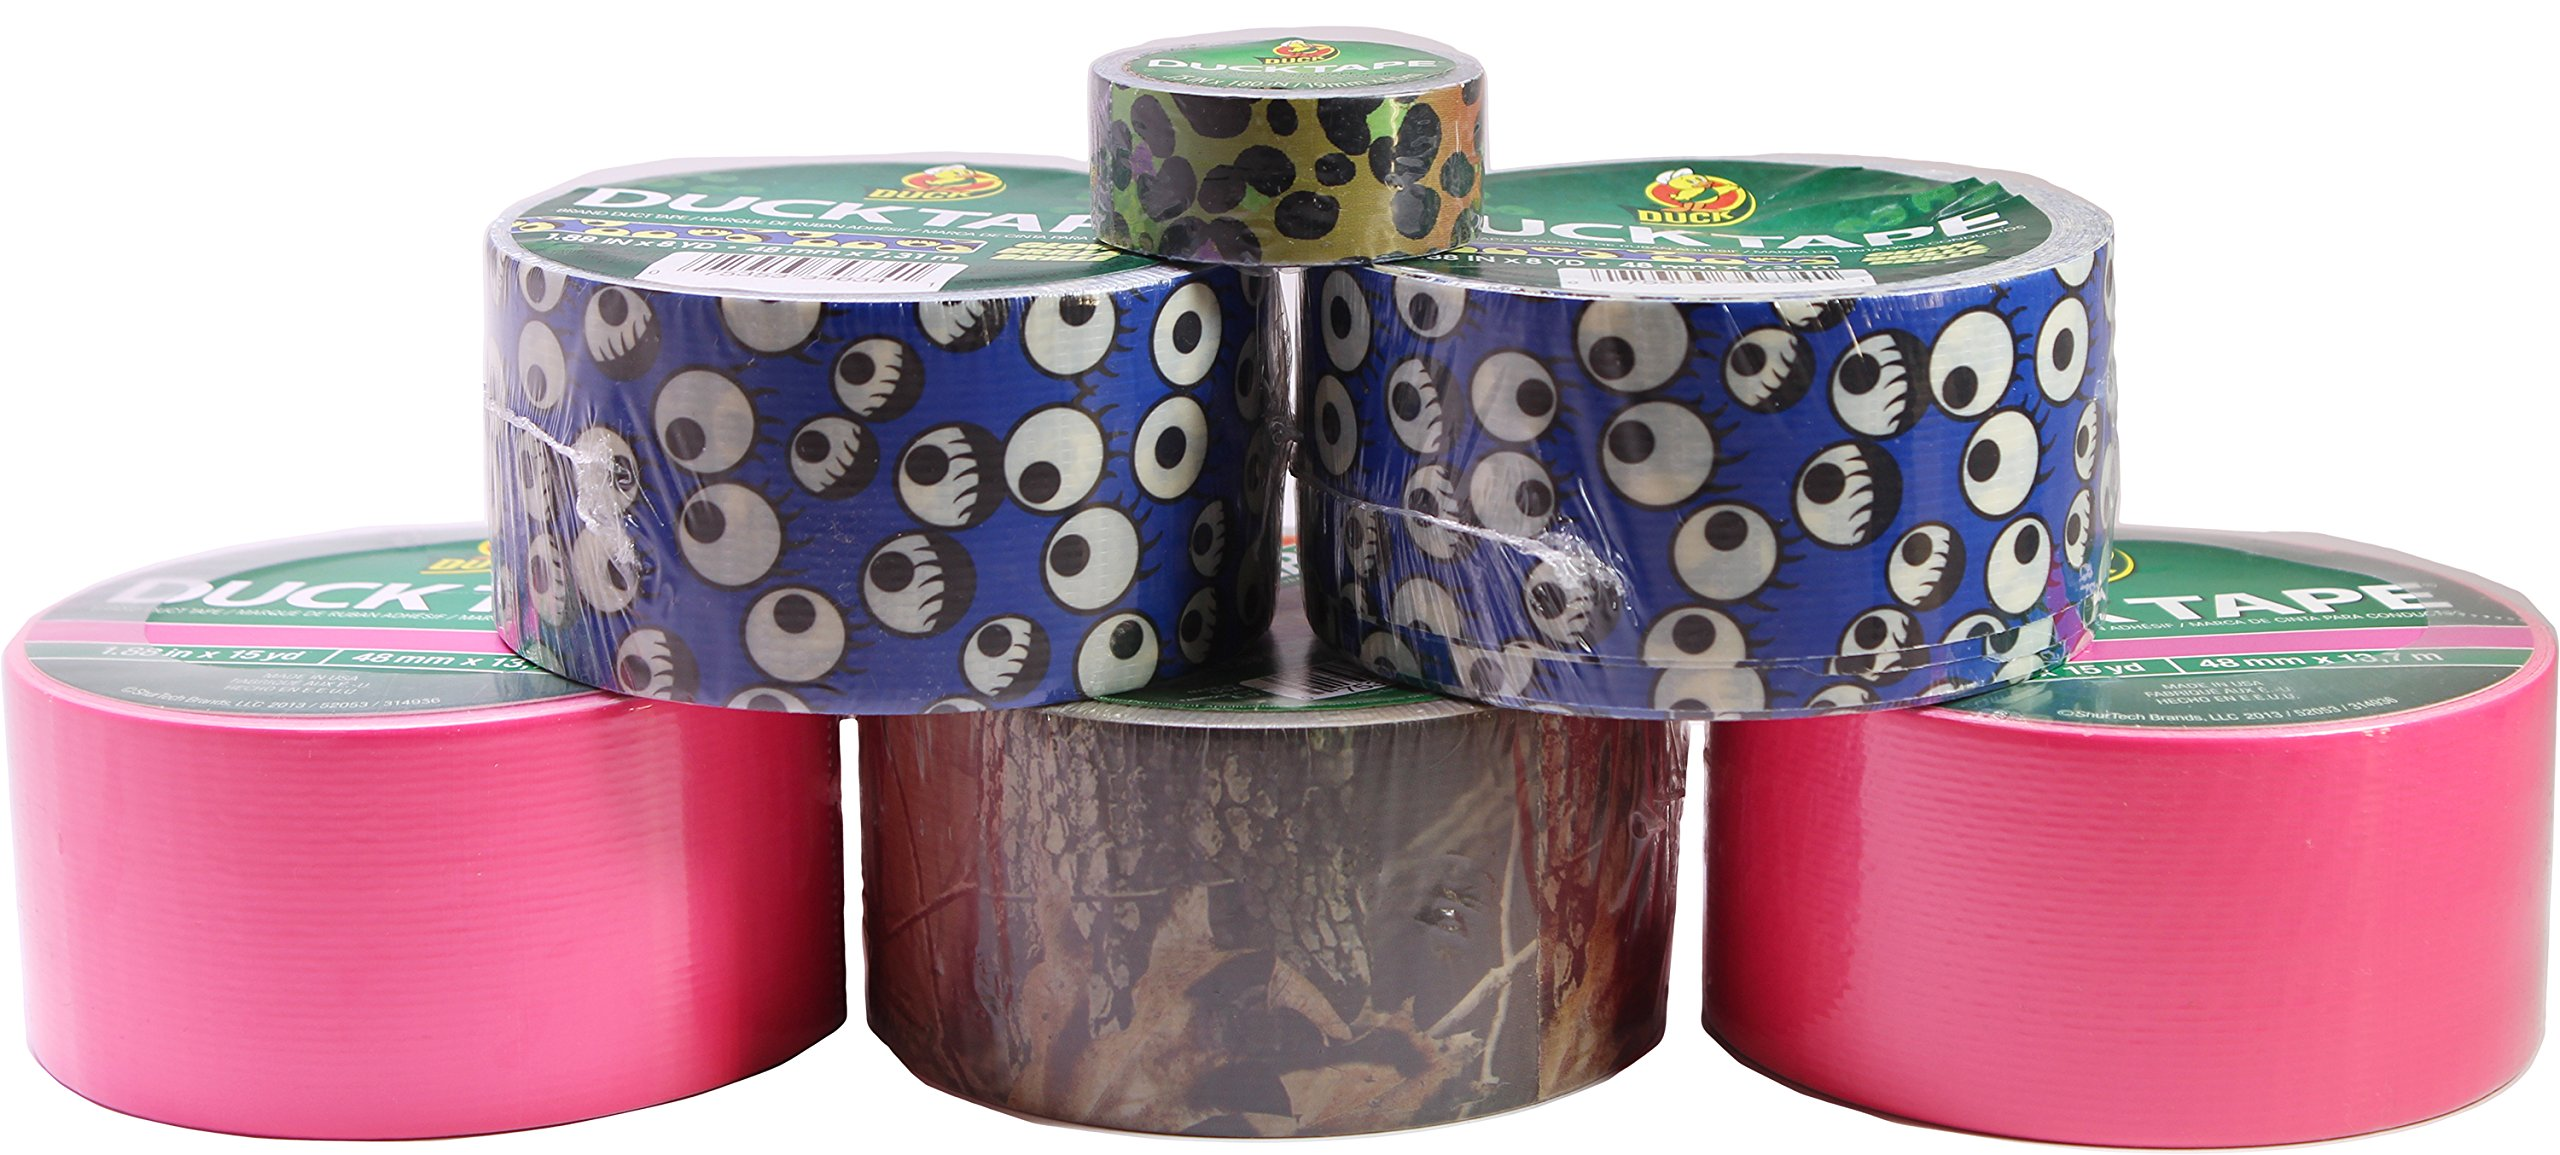 Duck Duct Tape Assorted Set, Includes 6 Printed Rolls, Great for Crafting